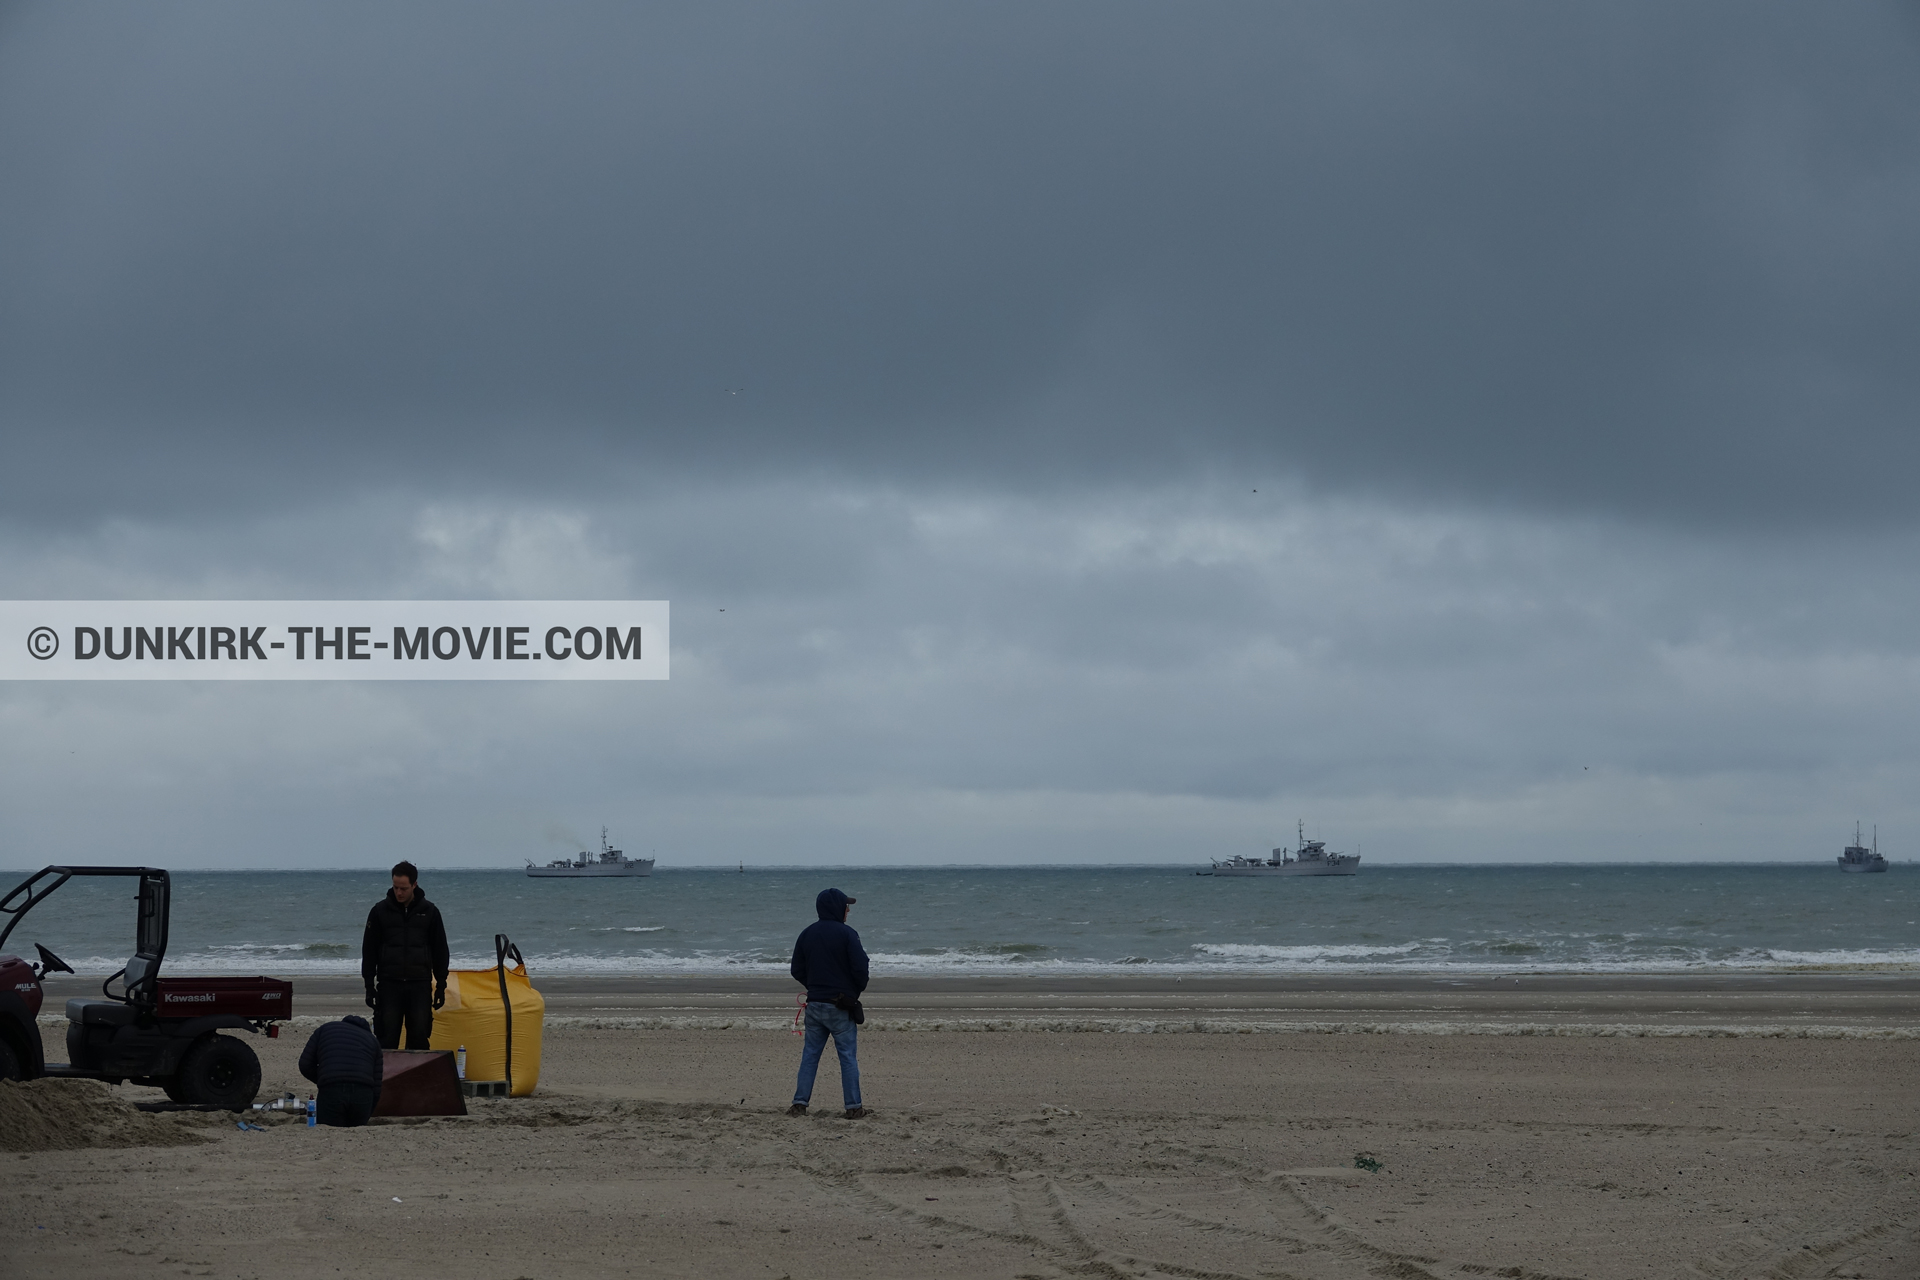 Photo on canvas number 381, of the filming of the film Dunkirk